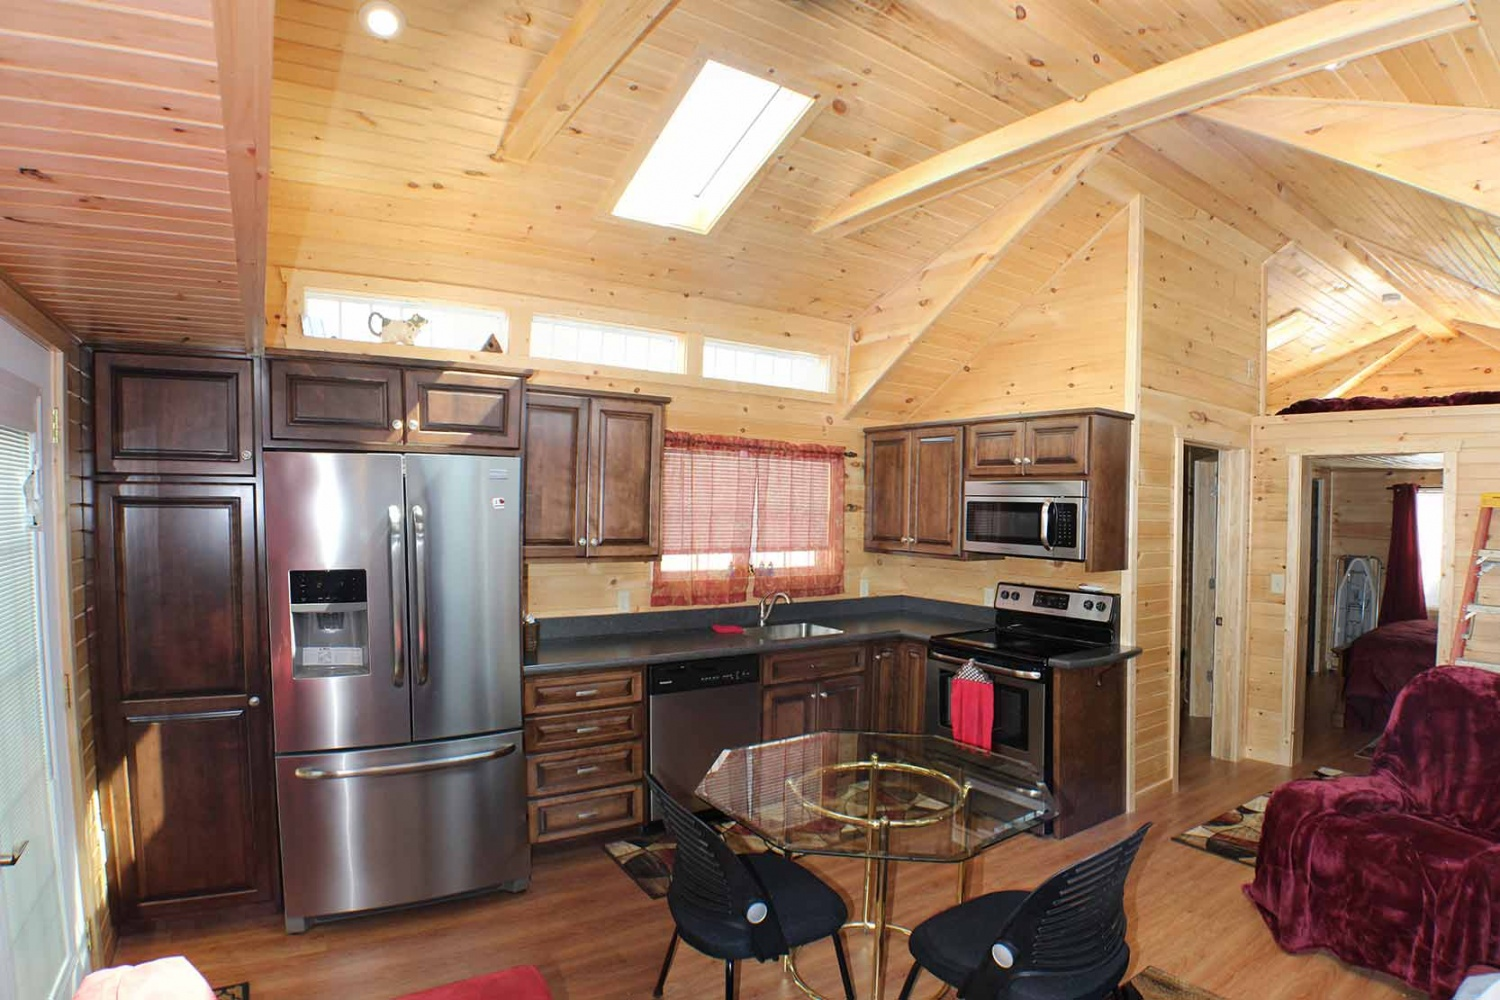 Sale on Prefab Amish Sheds in Pennsylvania - The Shelter Blog